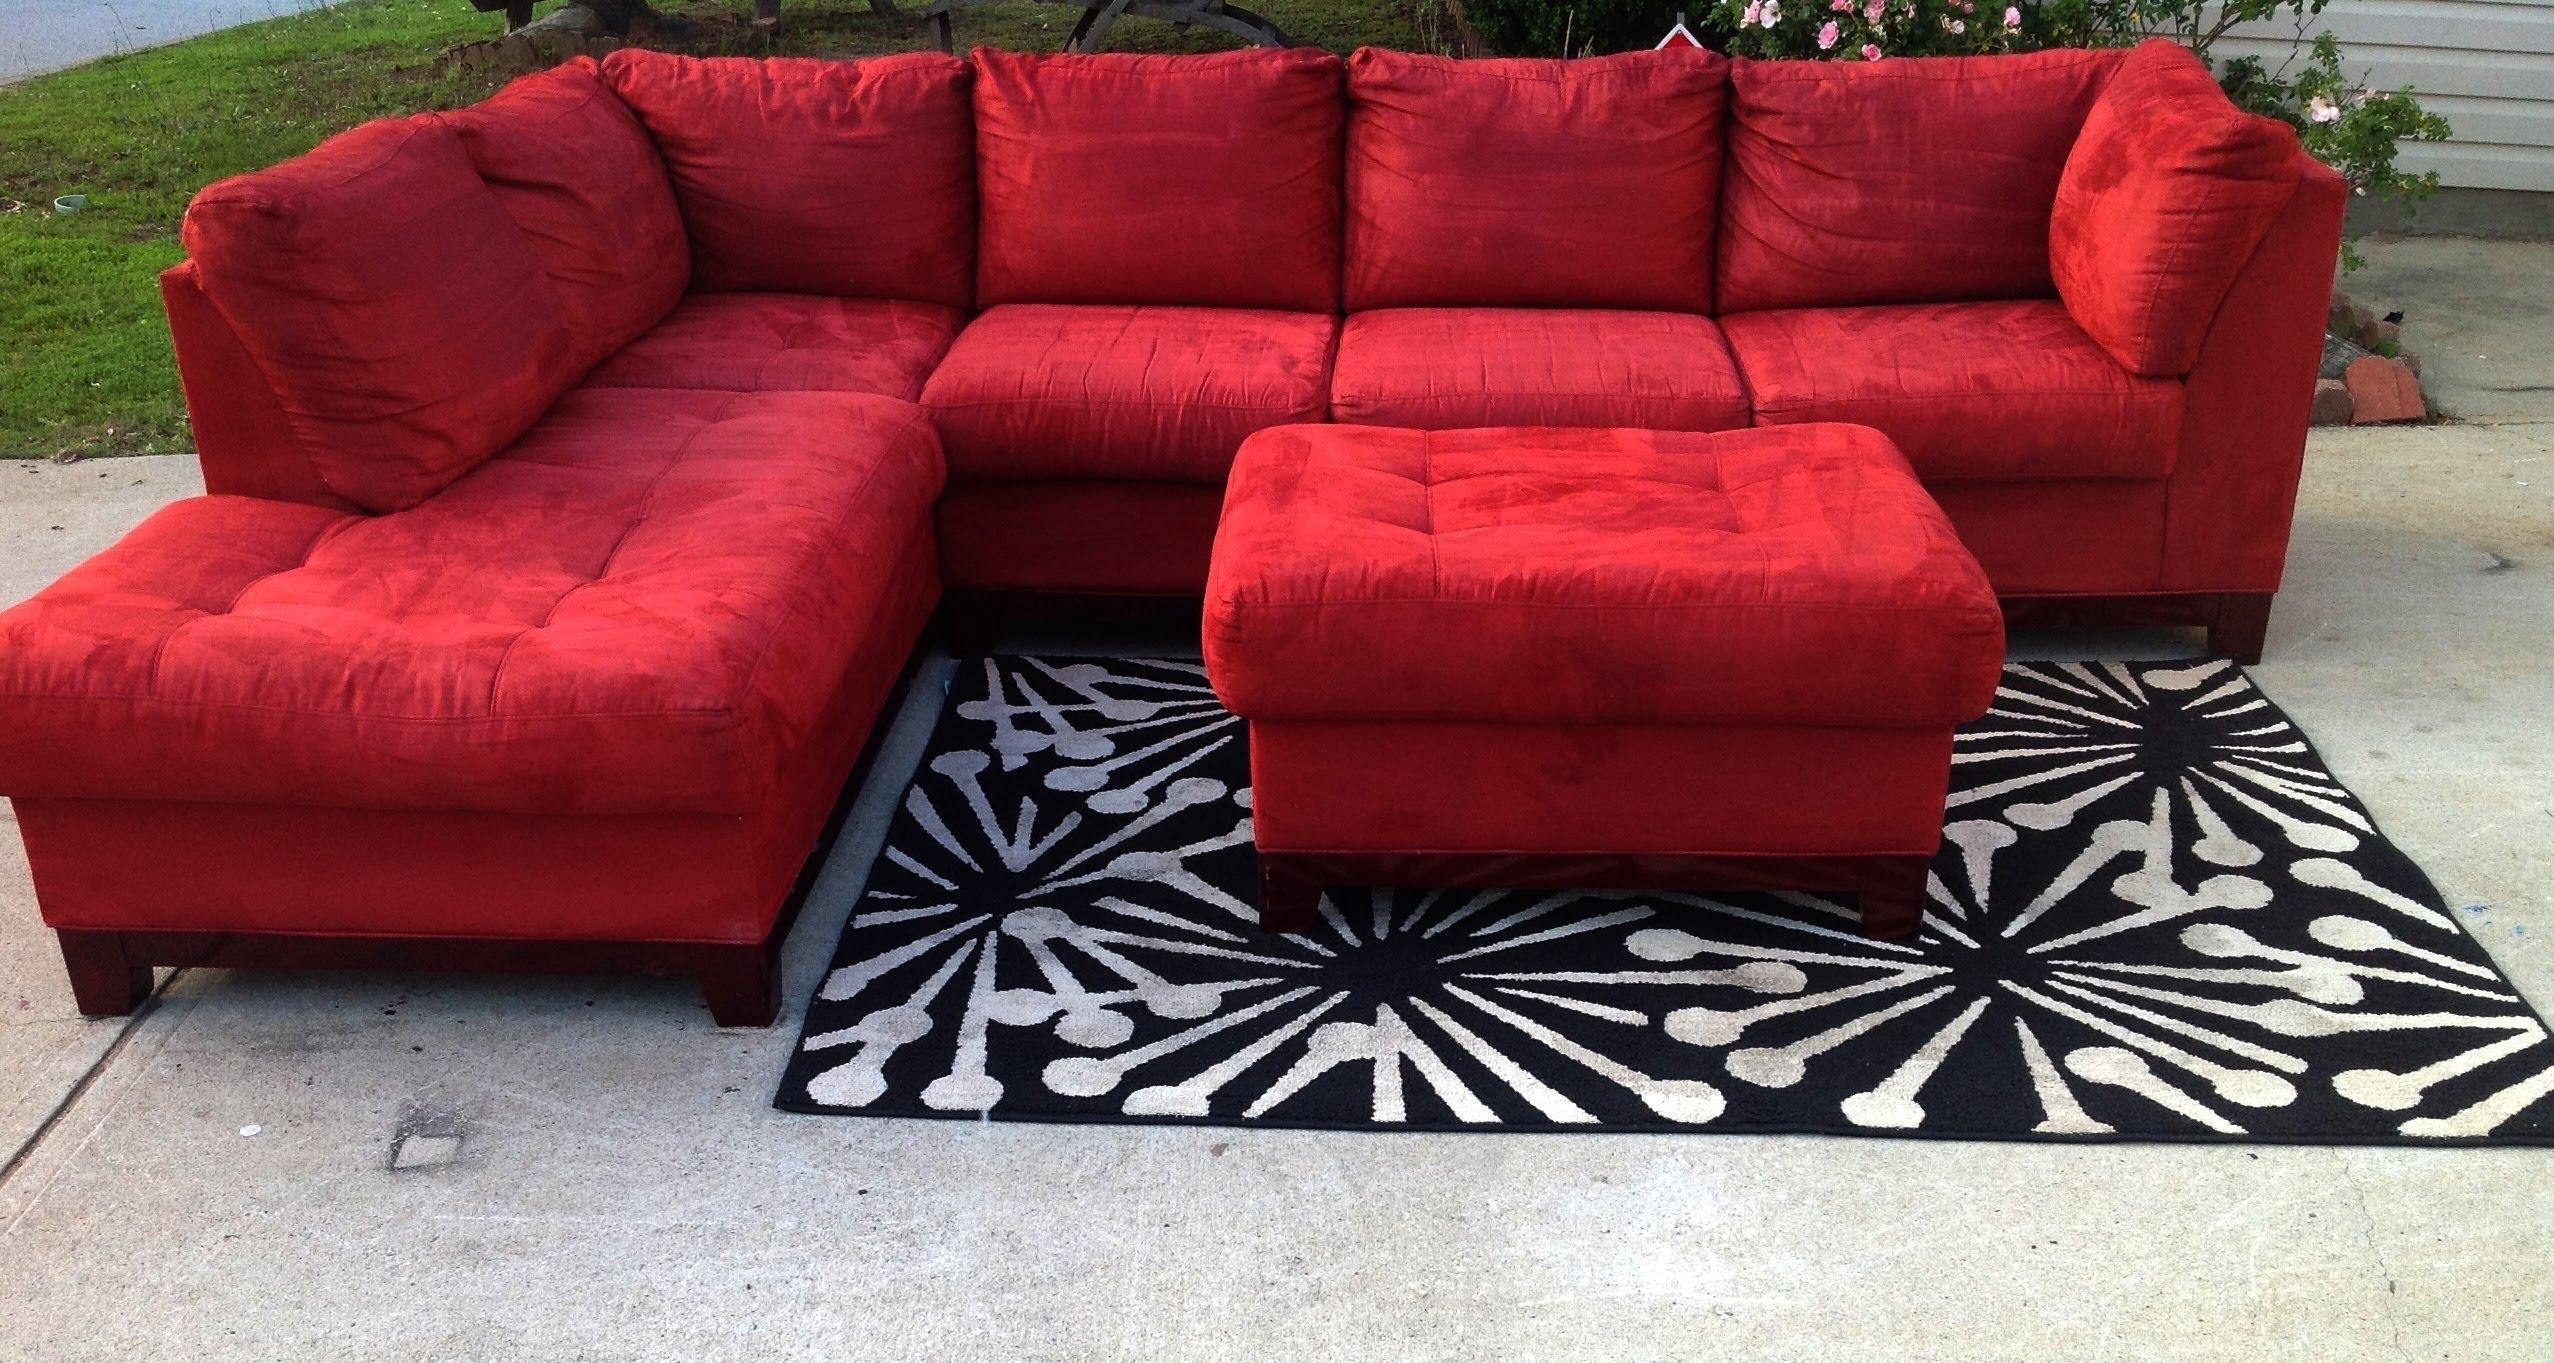 Red Cindy Crawford Stlye Sectional 475 – Youtube For Cindy Crawford Sleeper Sofas (Image 13 of 20)